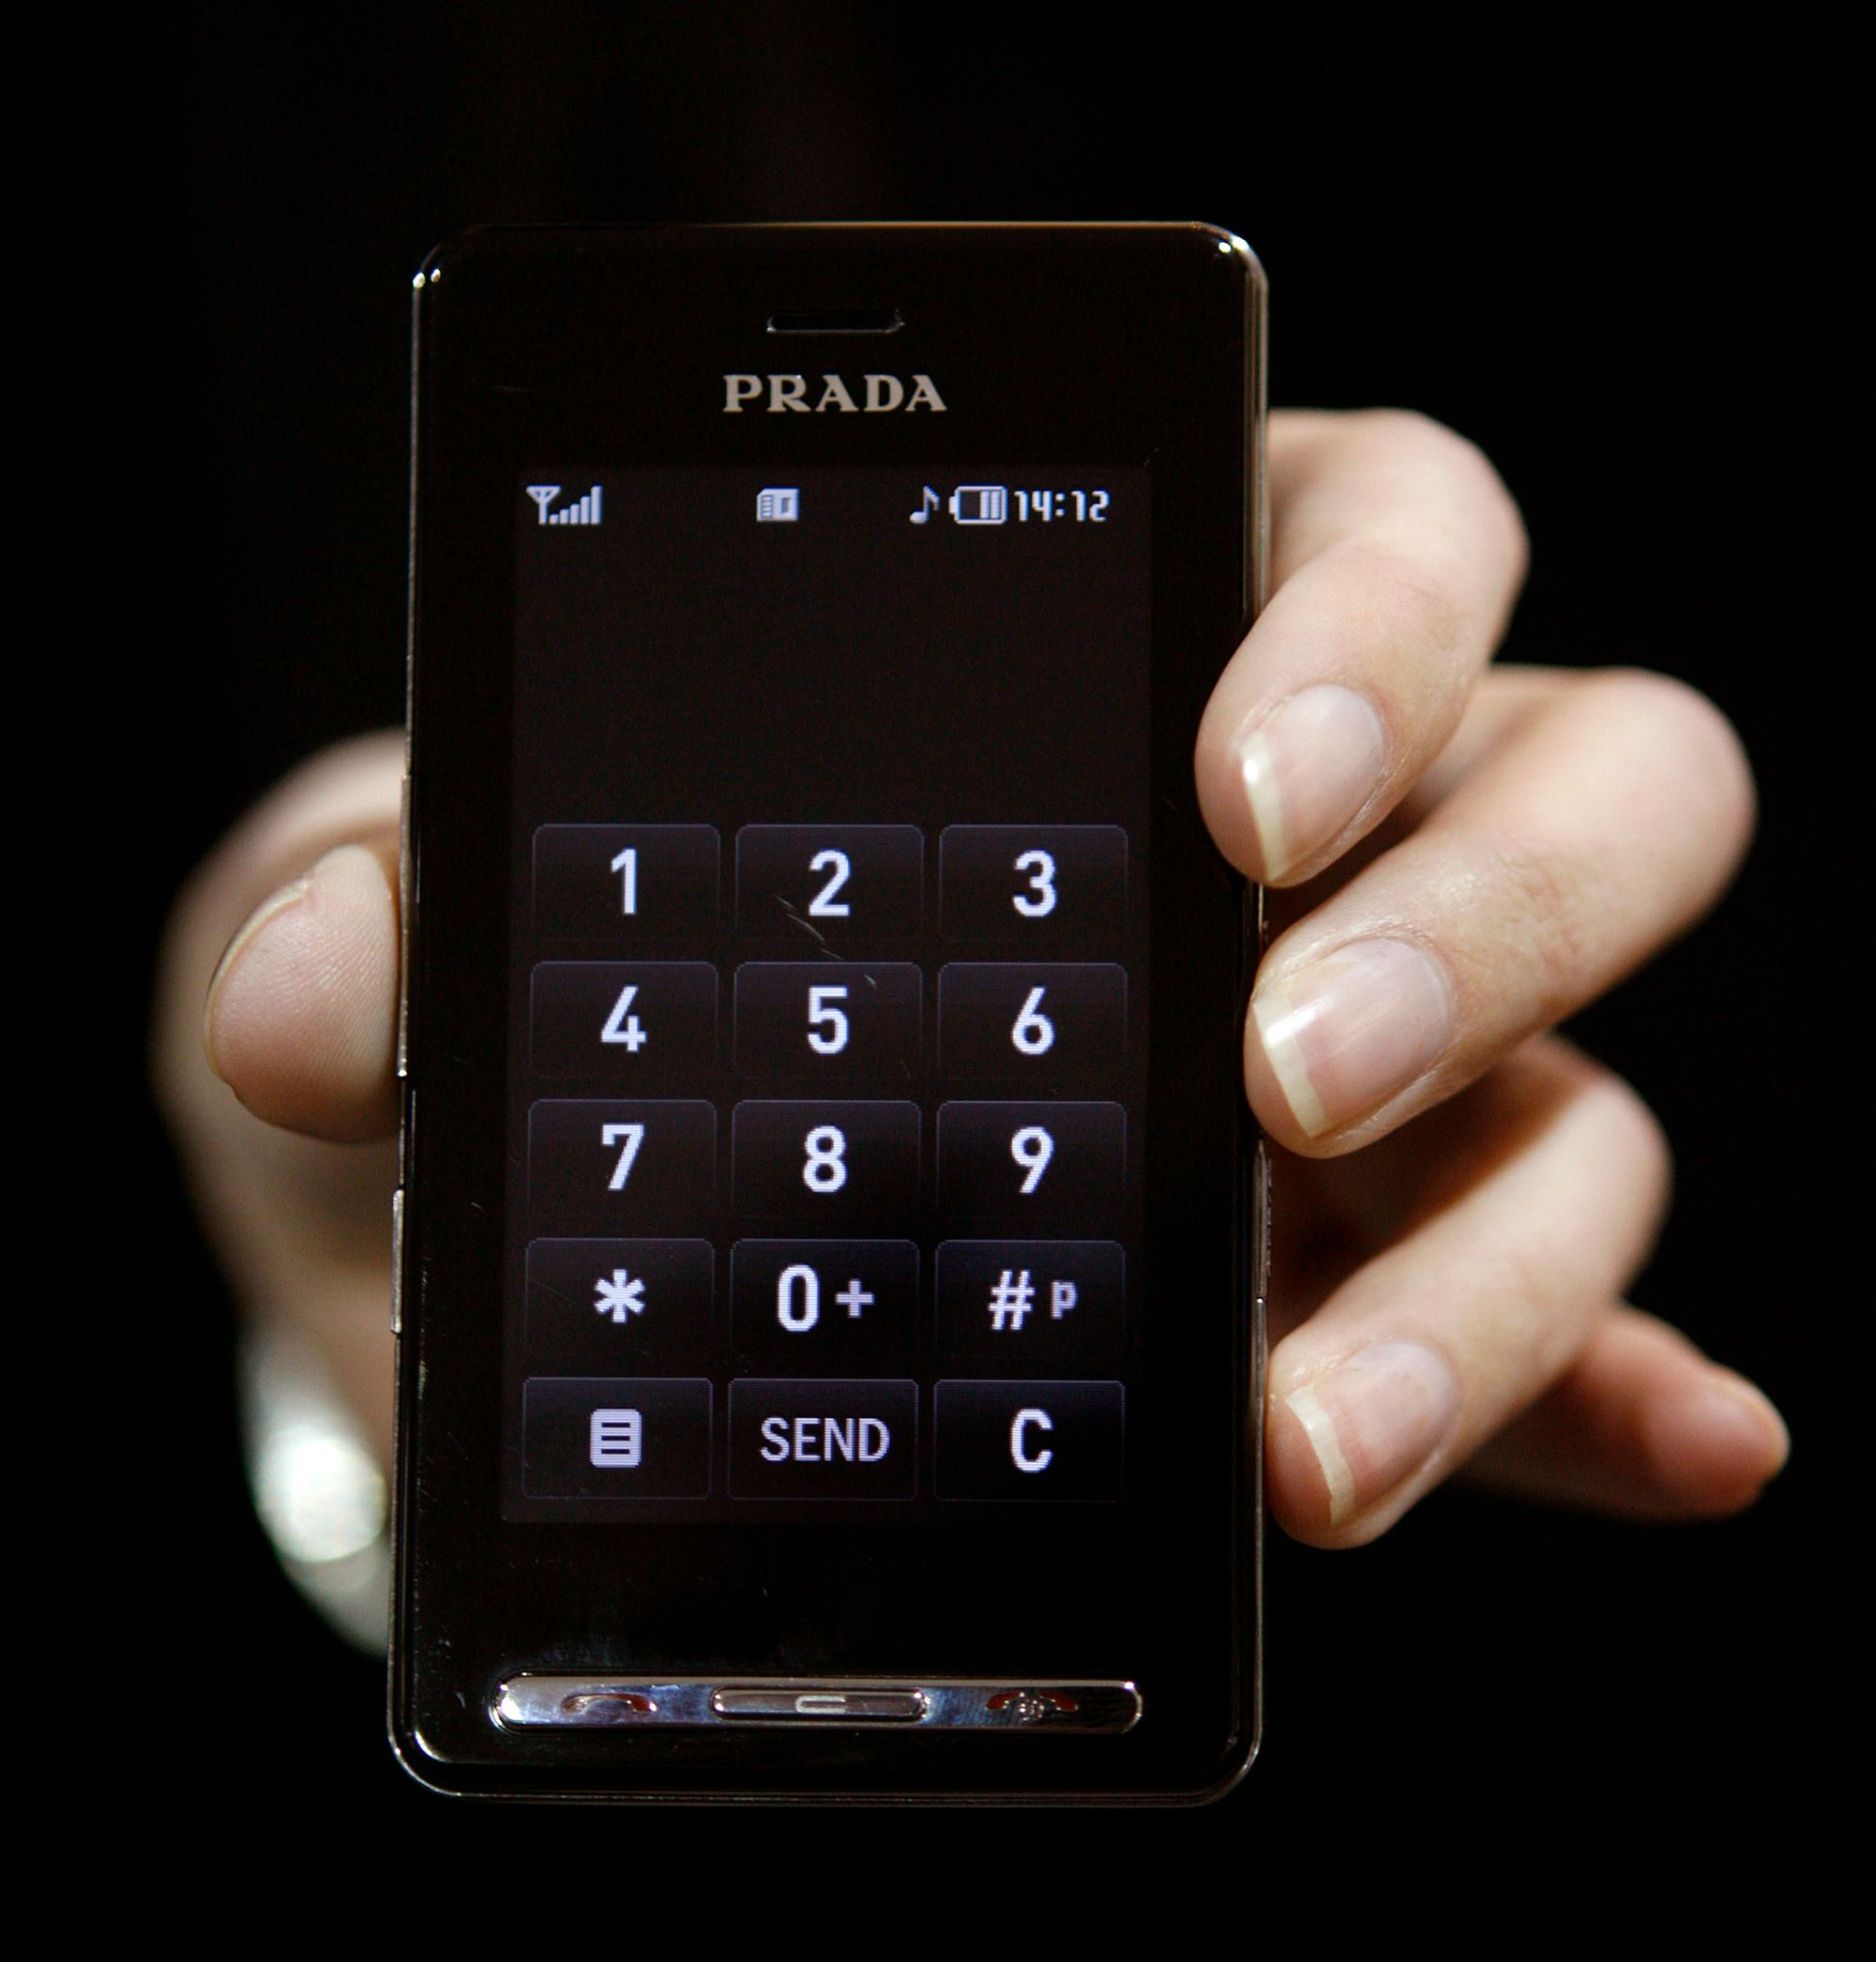 The 2007 LG Prada was arguably the first iPhone-alike touch screen phone.